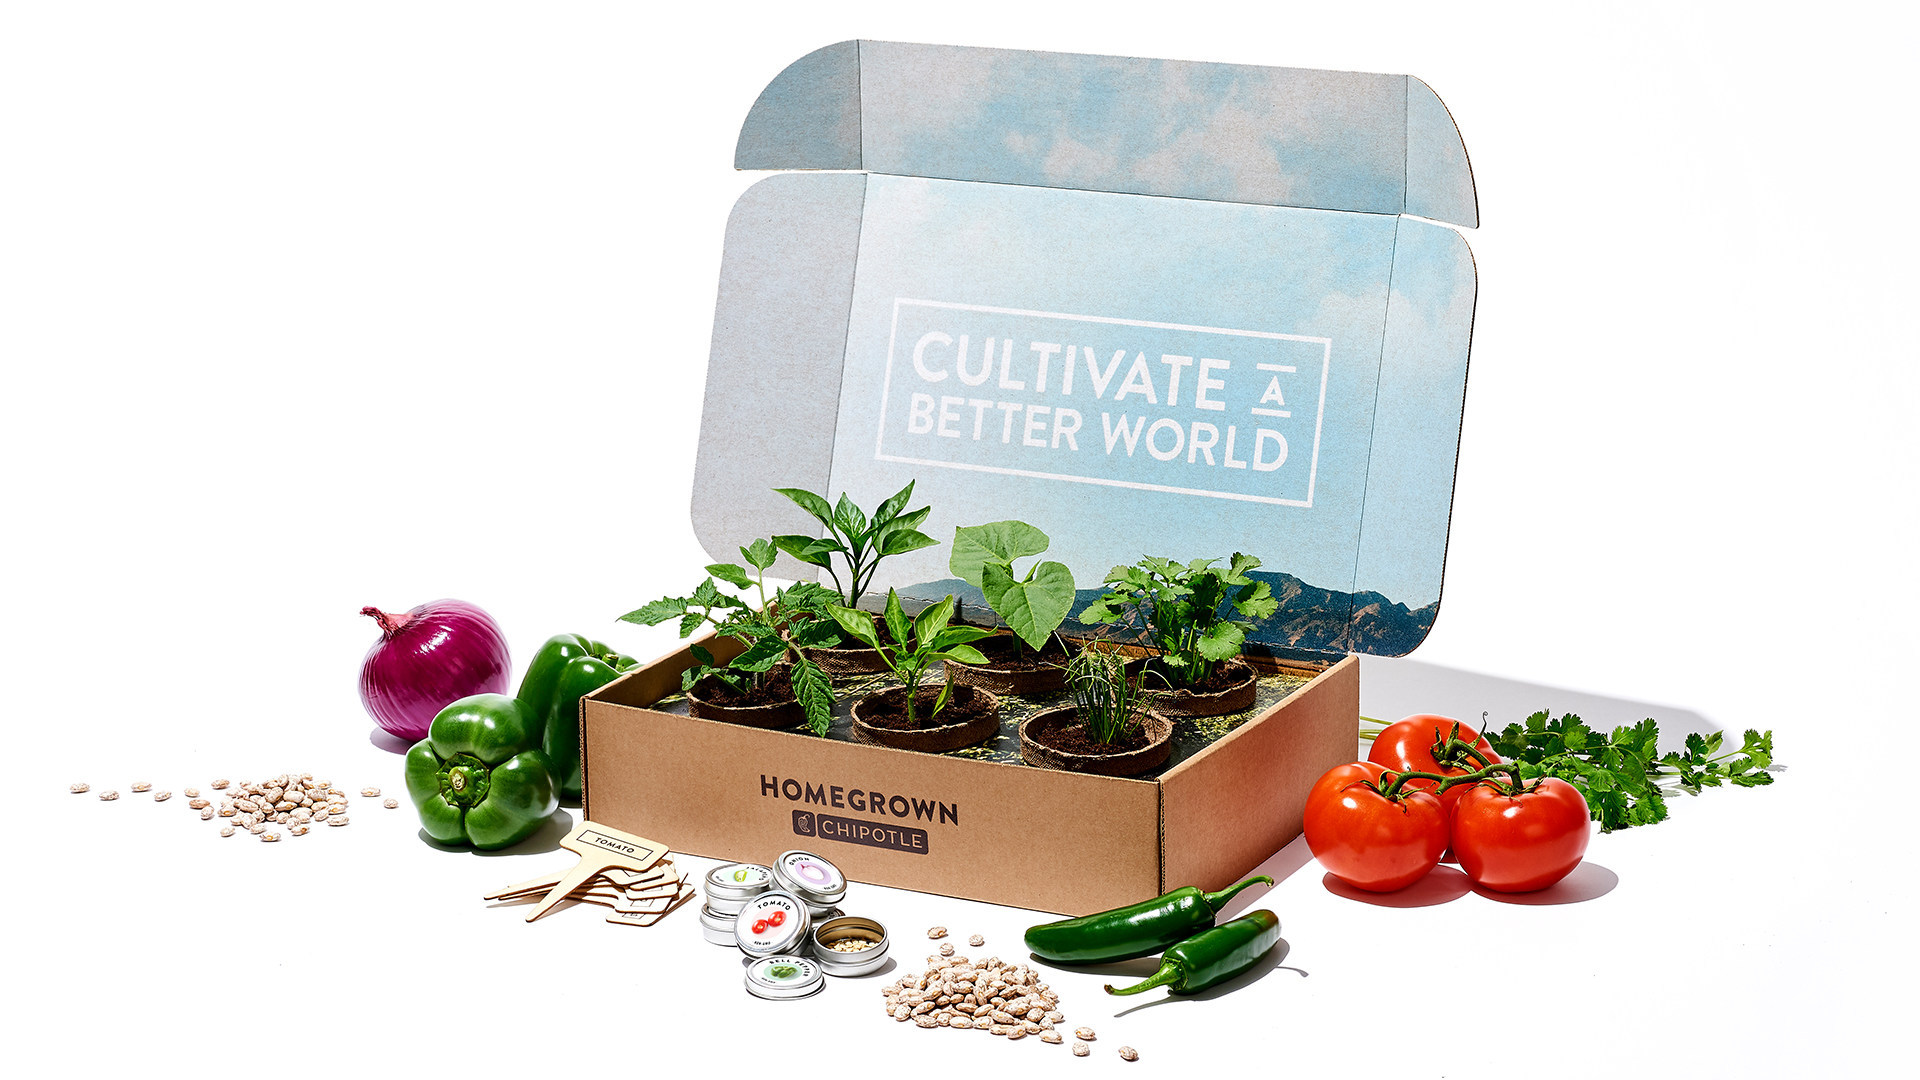 You Can Buy Your Own 'Home Grown Chipotle' Garden Box—Here's How